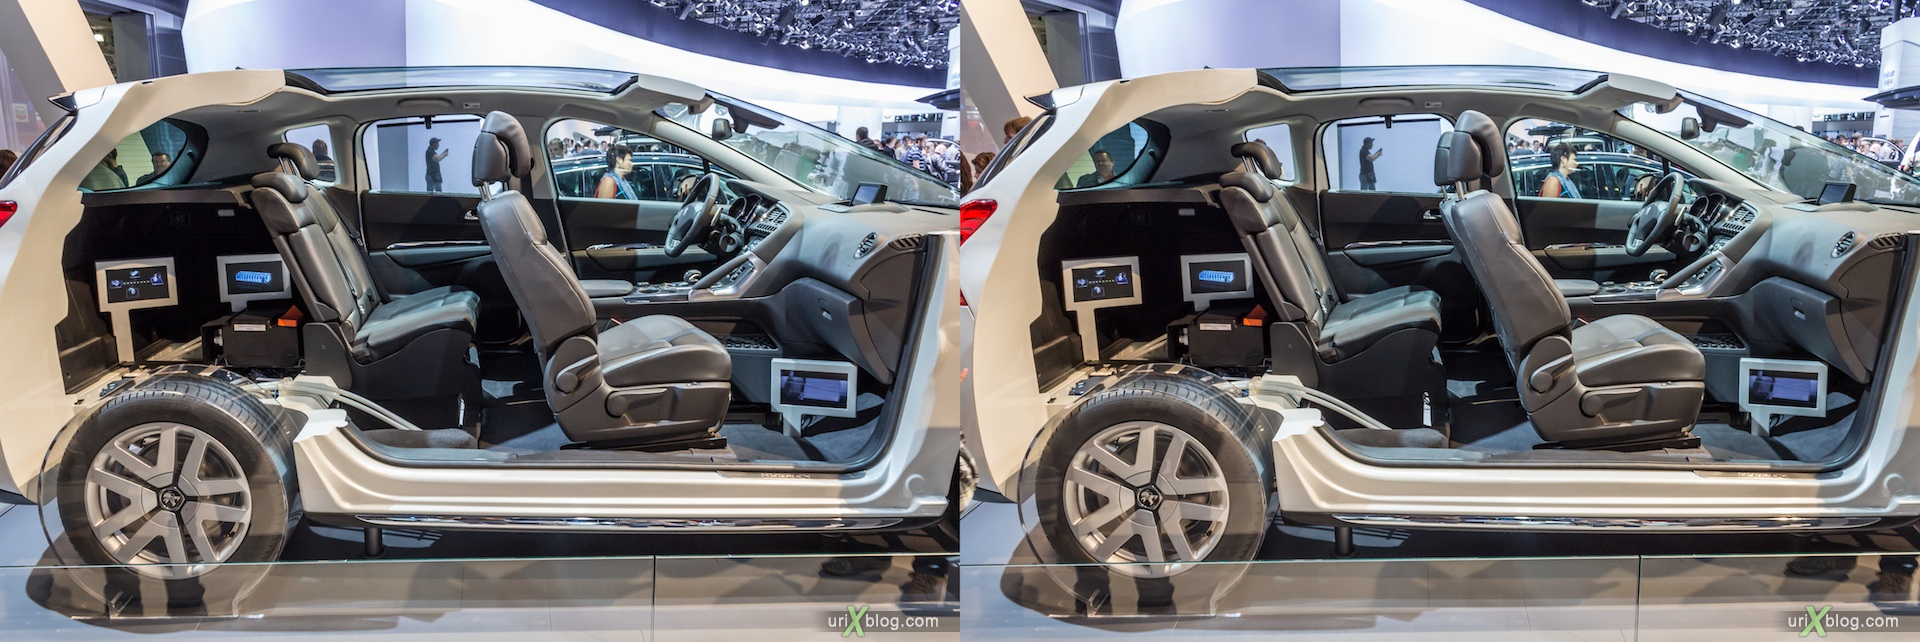 2012, машина в разрезе, Moscow International Automobile Salon, auto show, 3D, stereo pair, cross-eyed, crossview